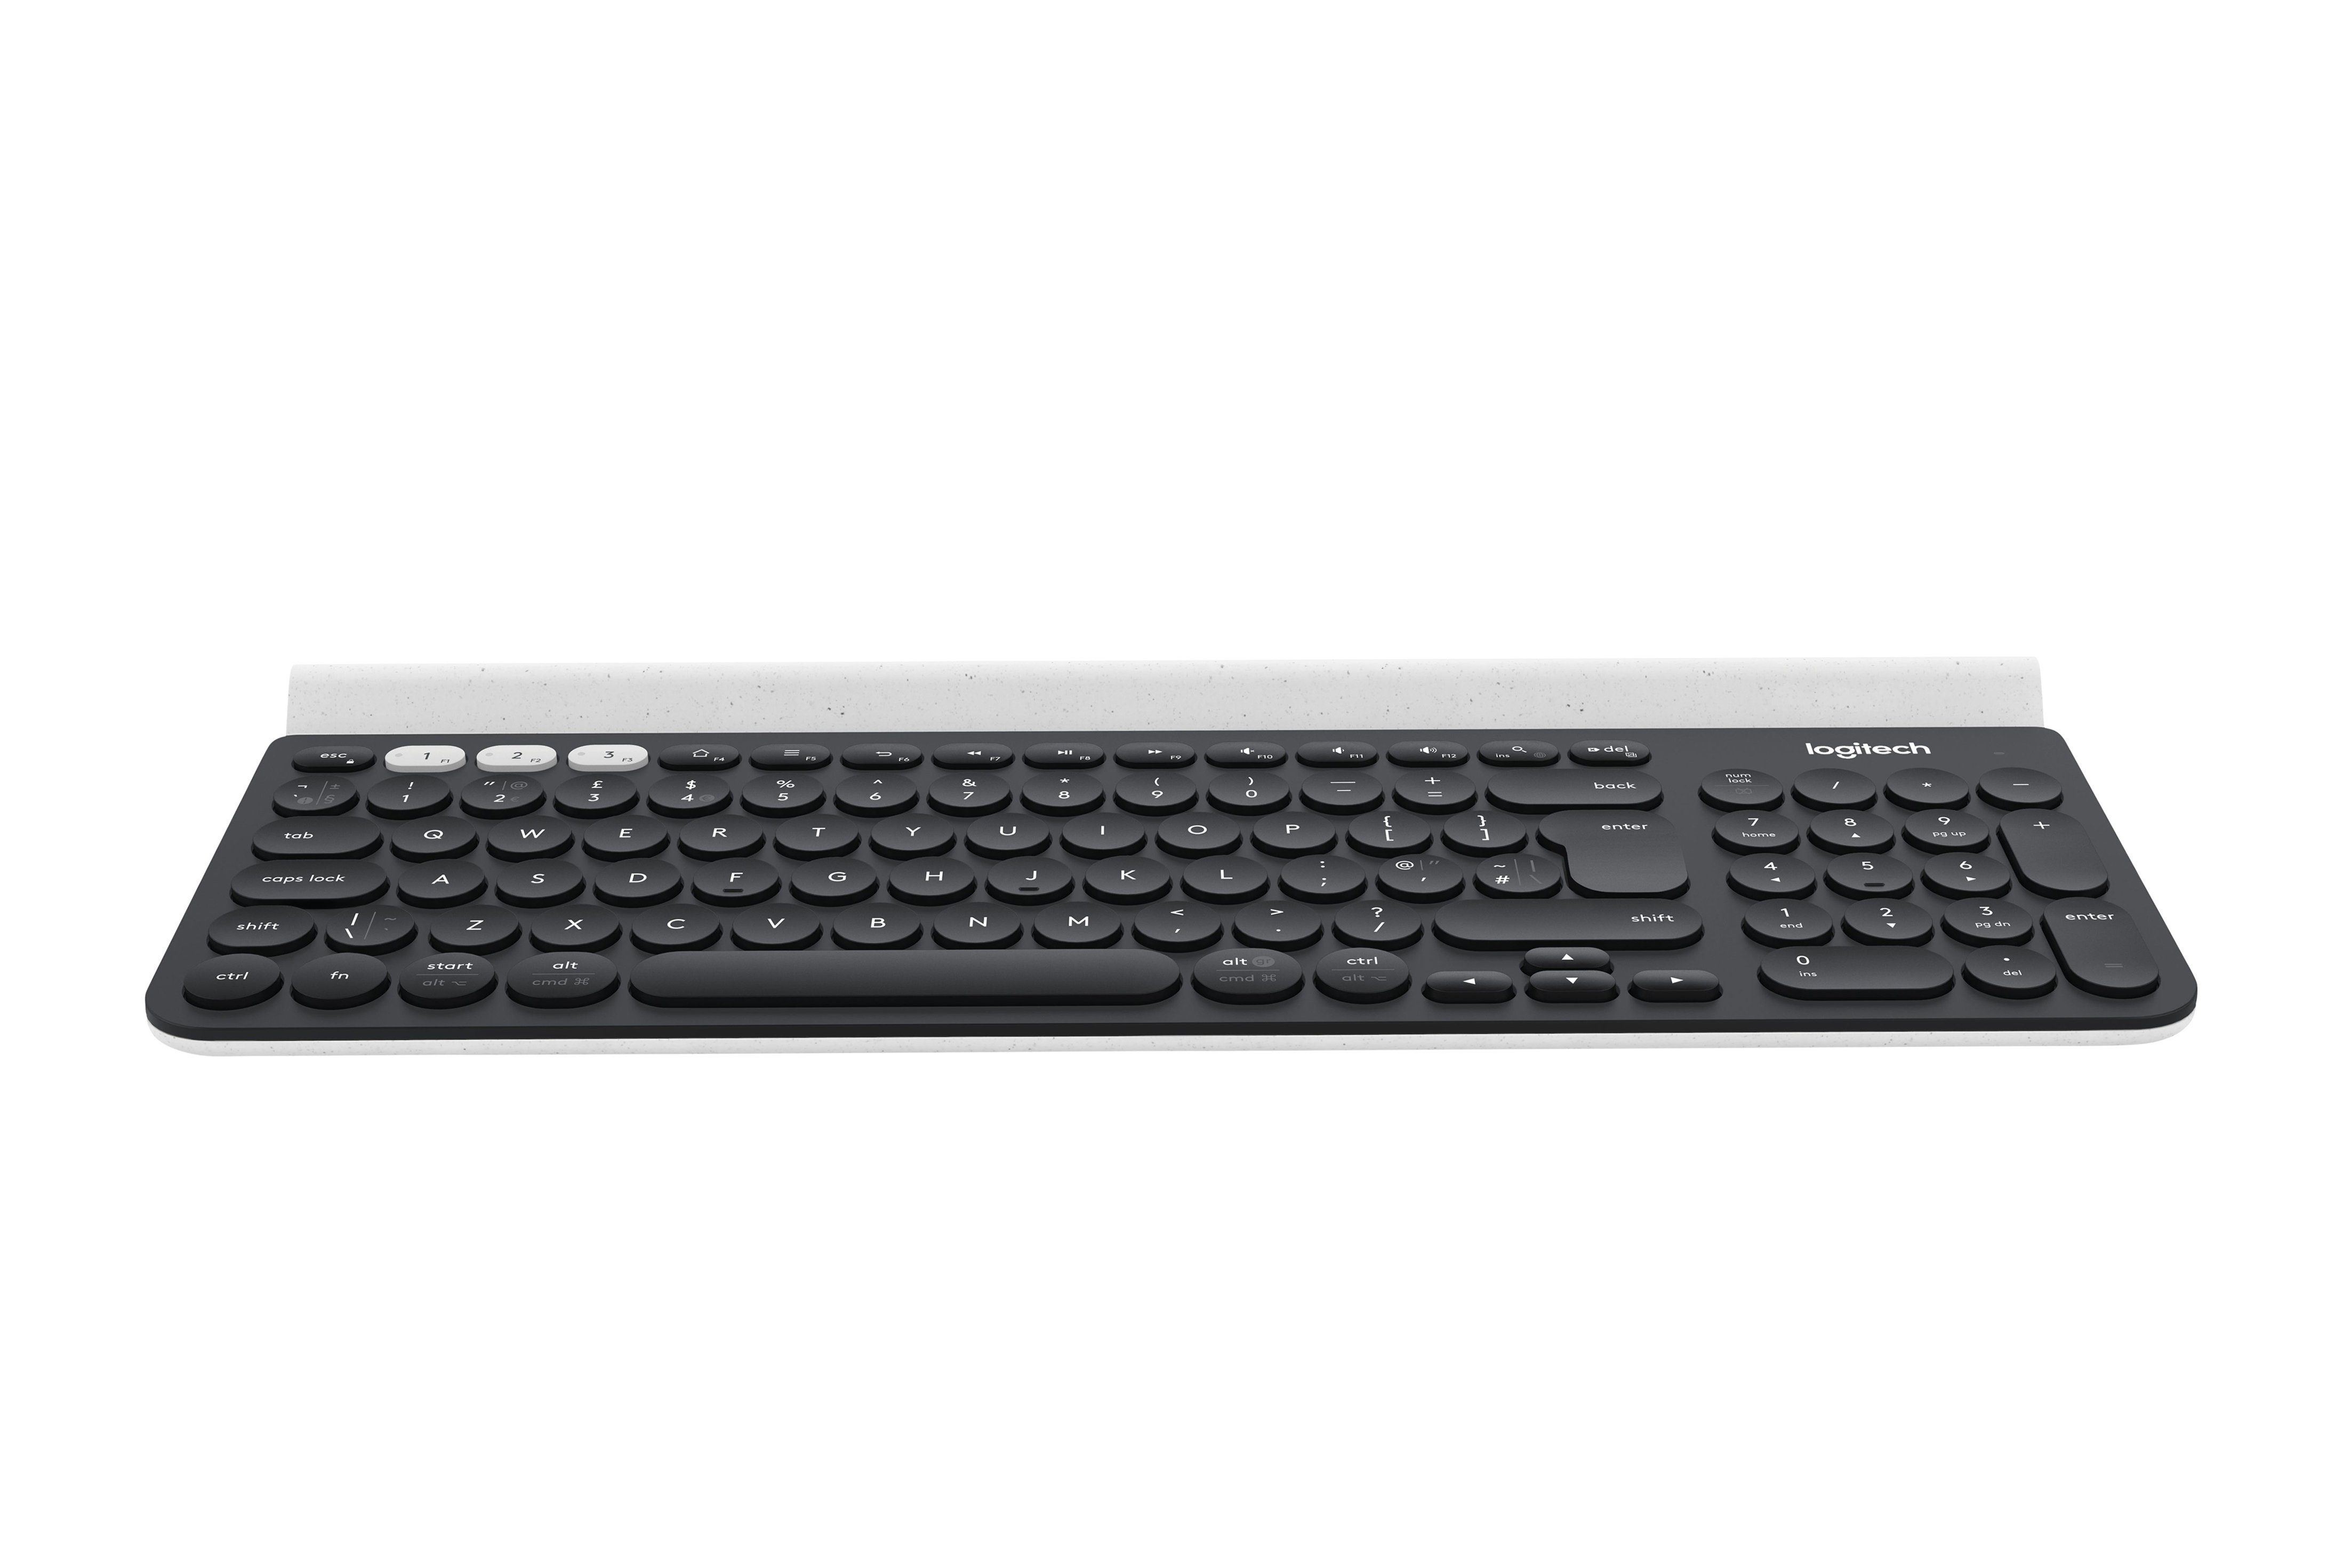 Logitech Tastatur »K780 MULTI-DEVICE BLUETOOTH«